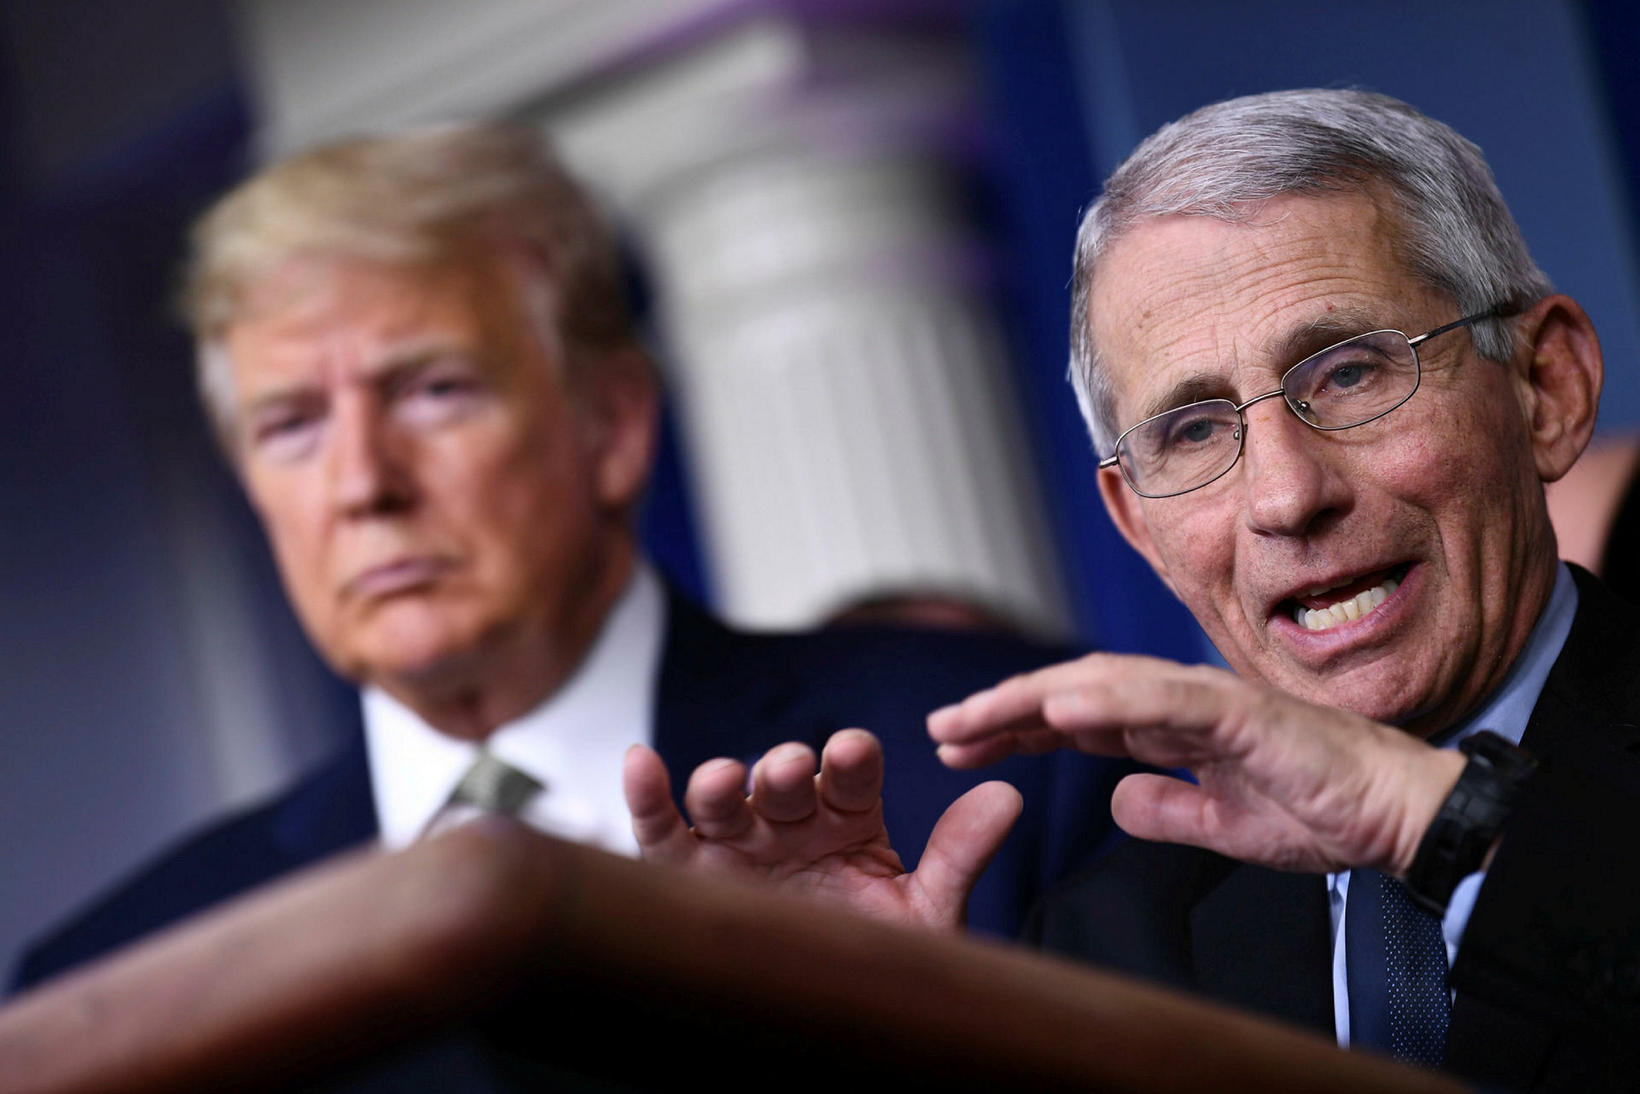 Anthony Fauci ásamt Donald Trump.